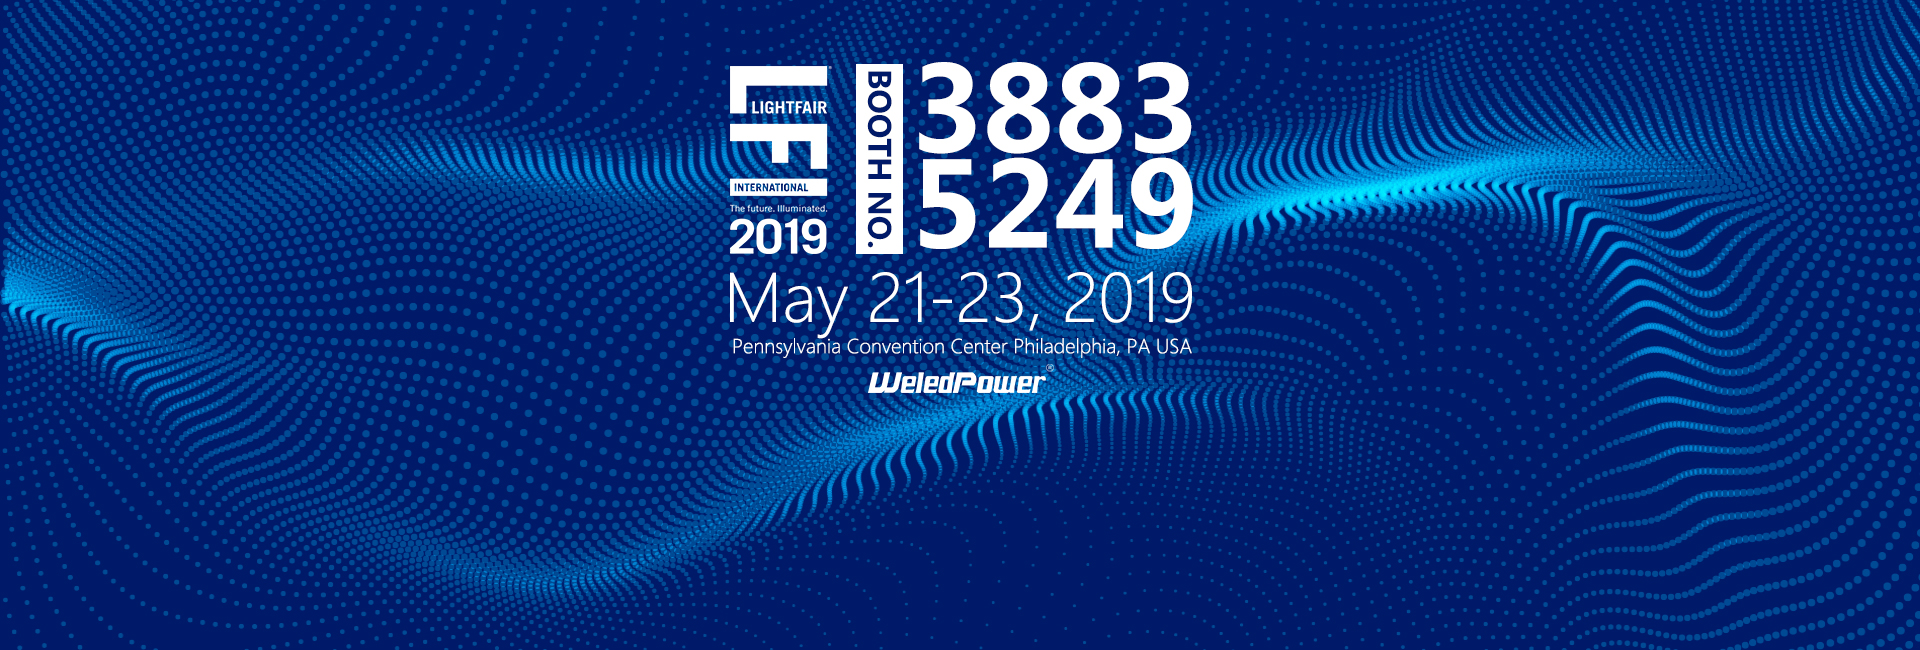 LFI2019 Light fair International, weledpower